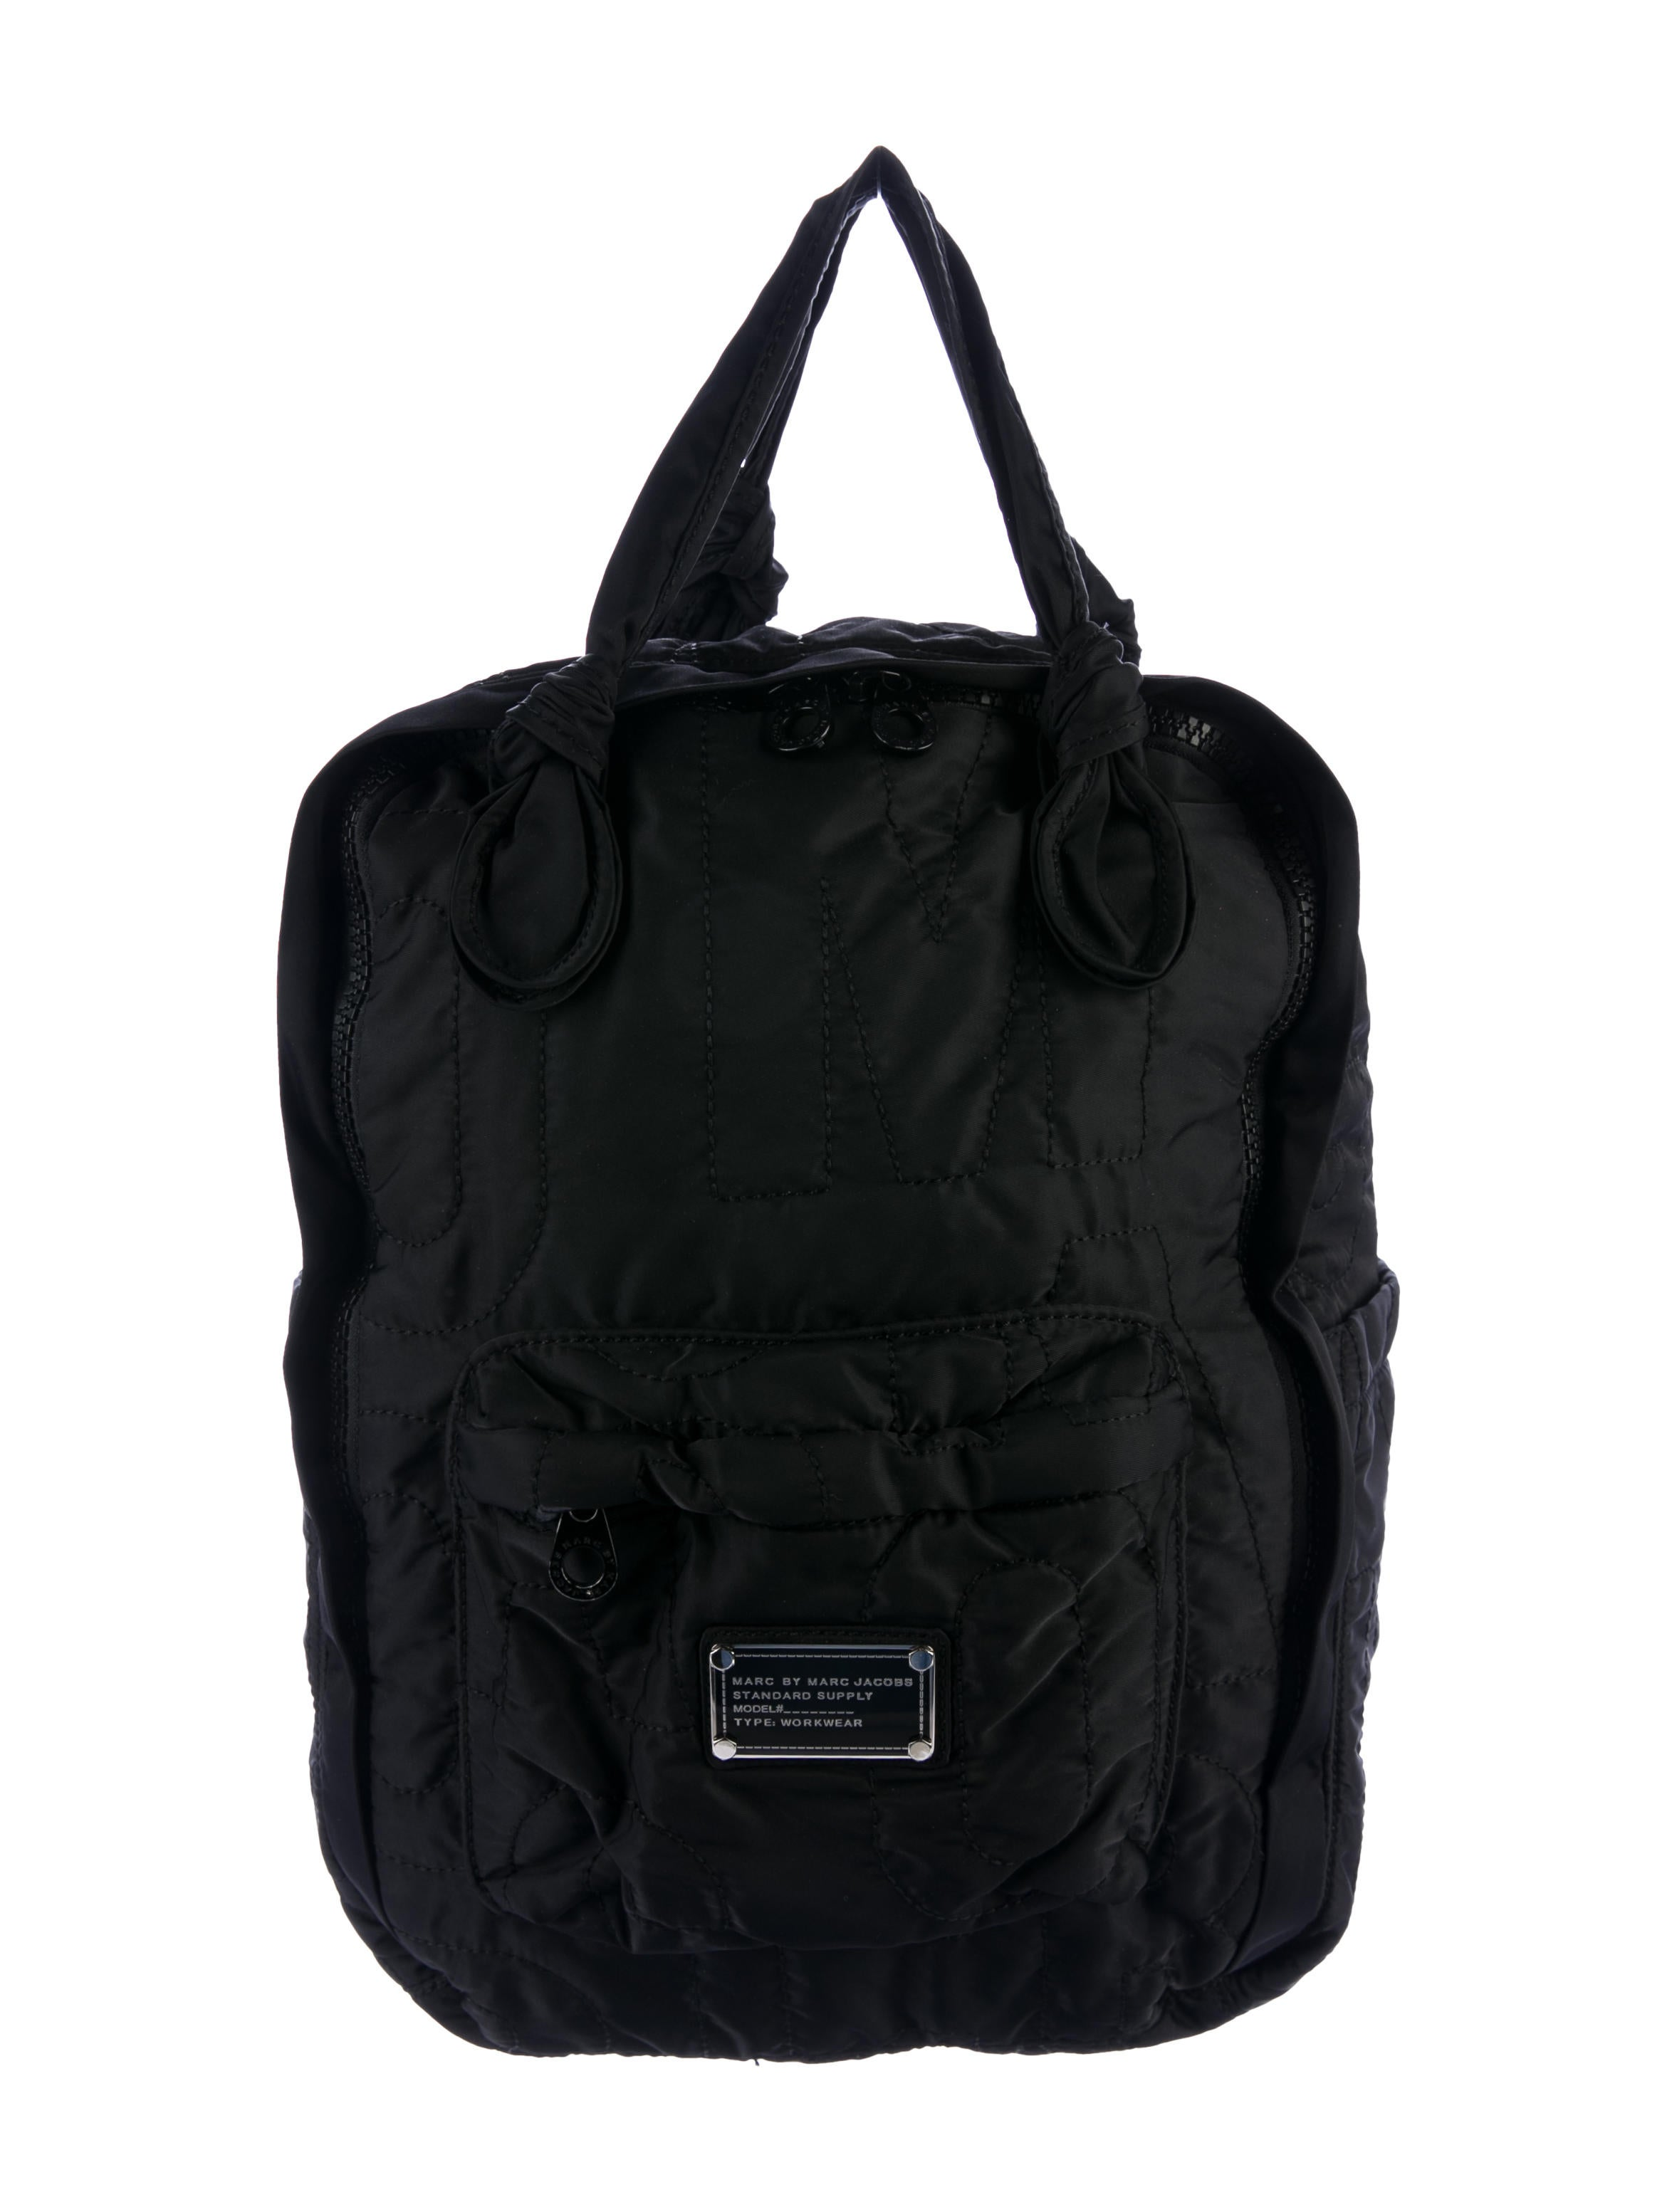 5790359be96a Pretty Nylon Backpack- Fenix Toulouse Handball